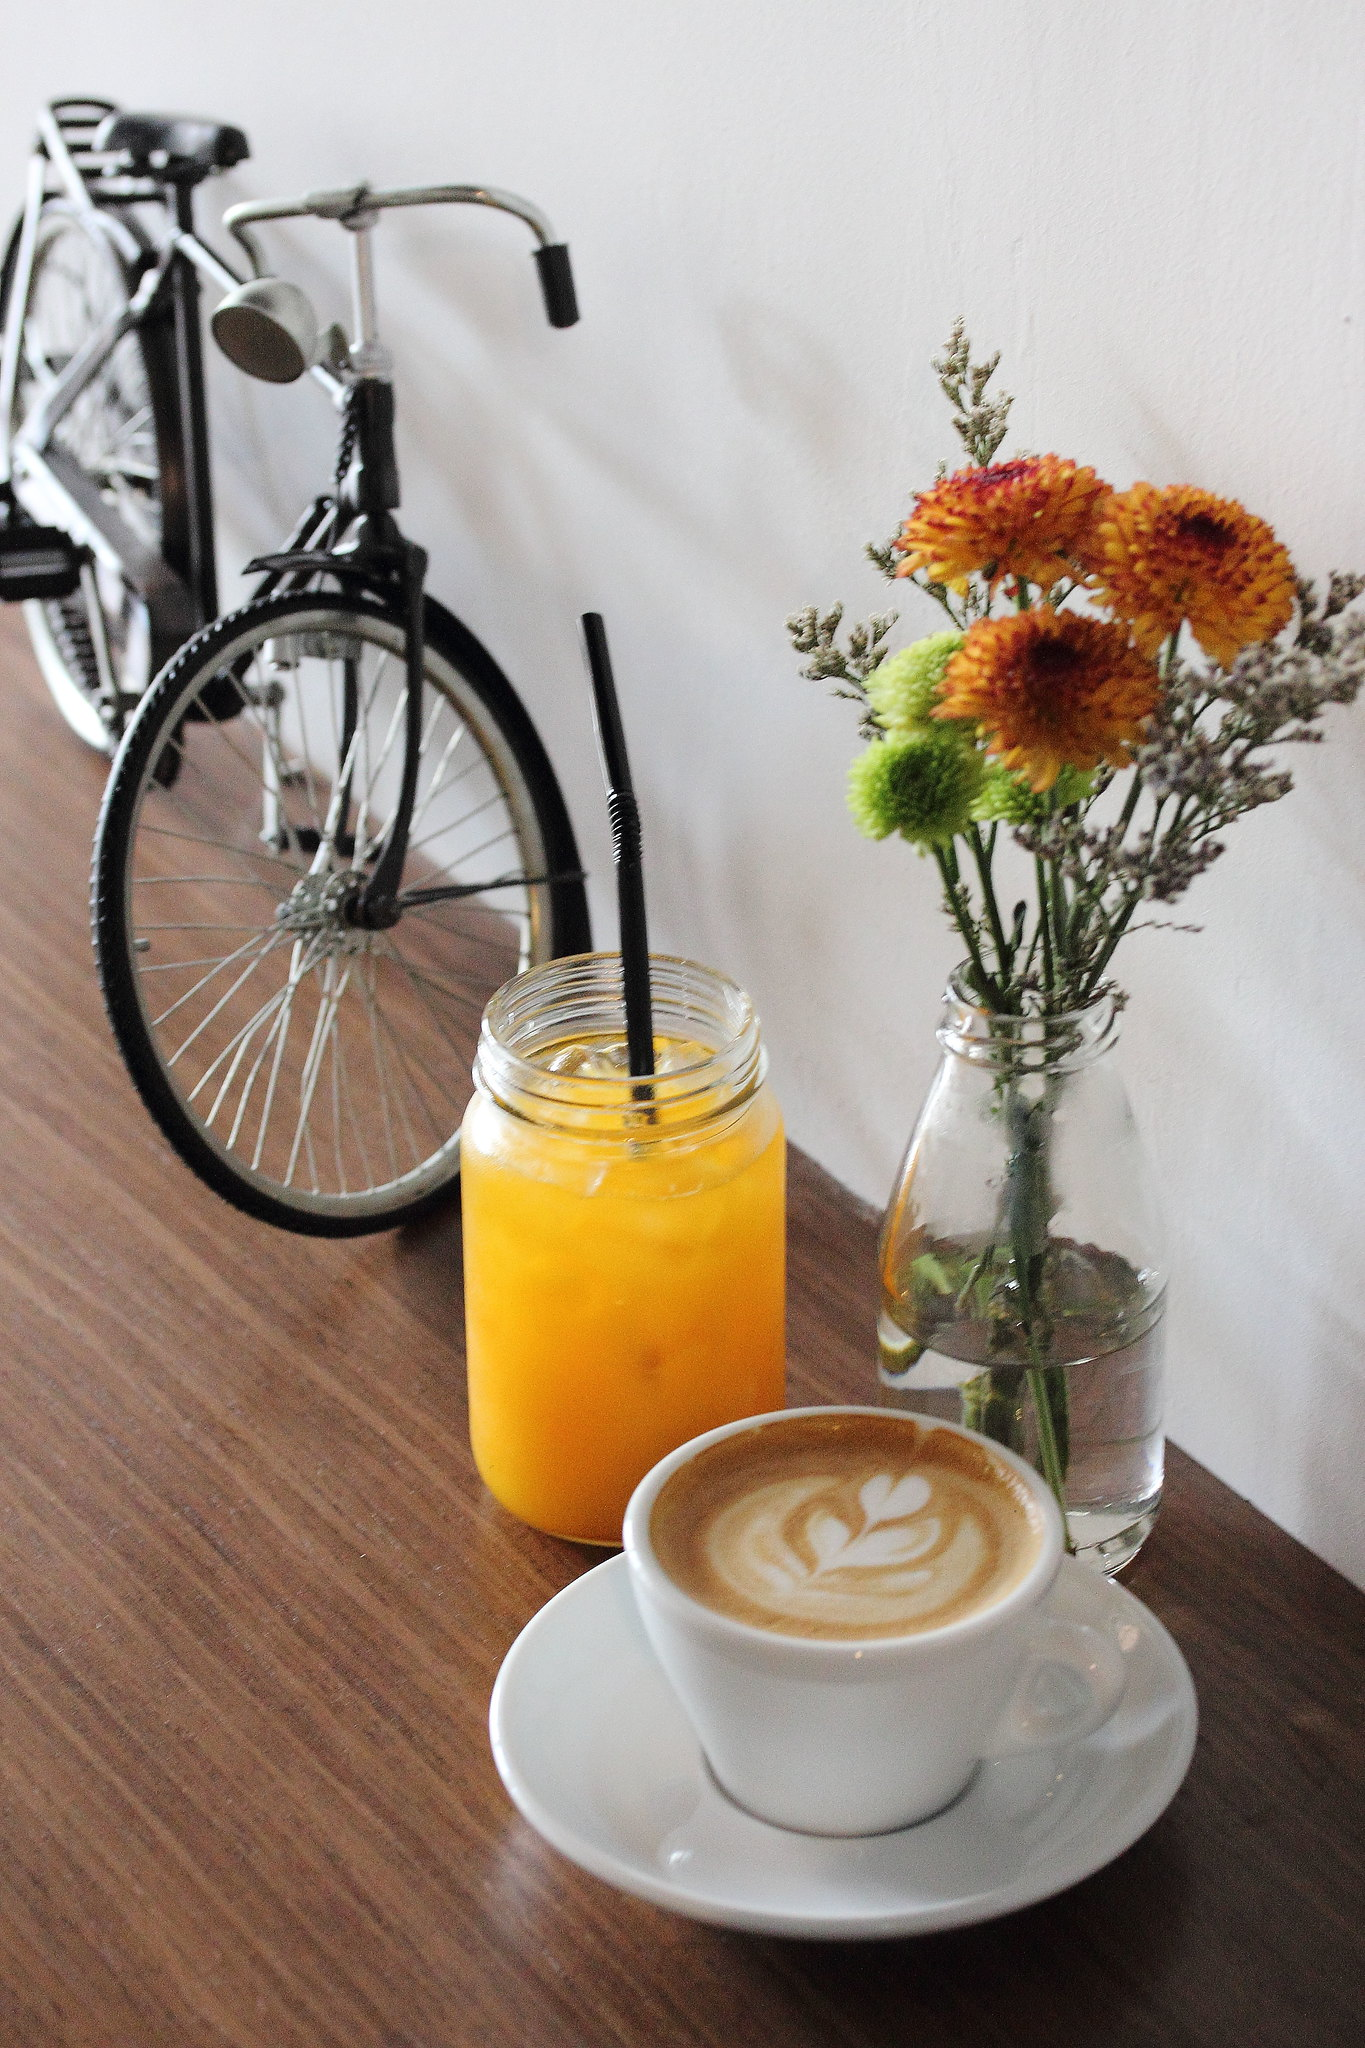 Bedok_Percolate_Café